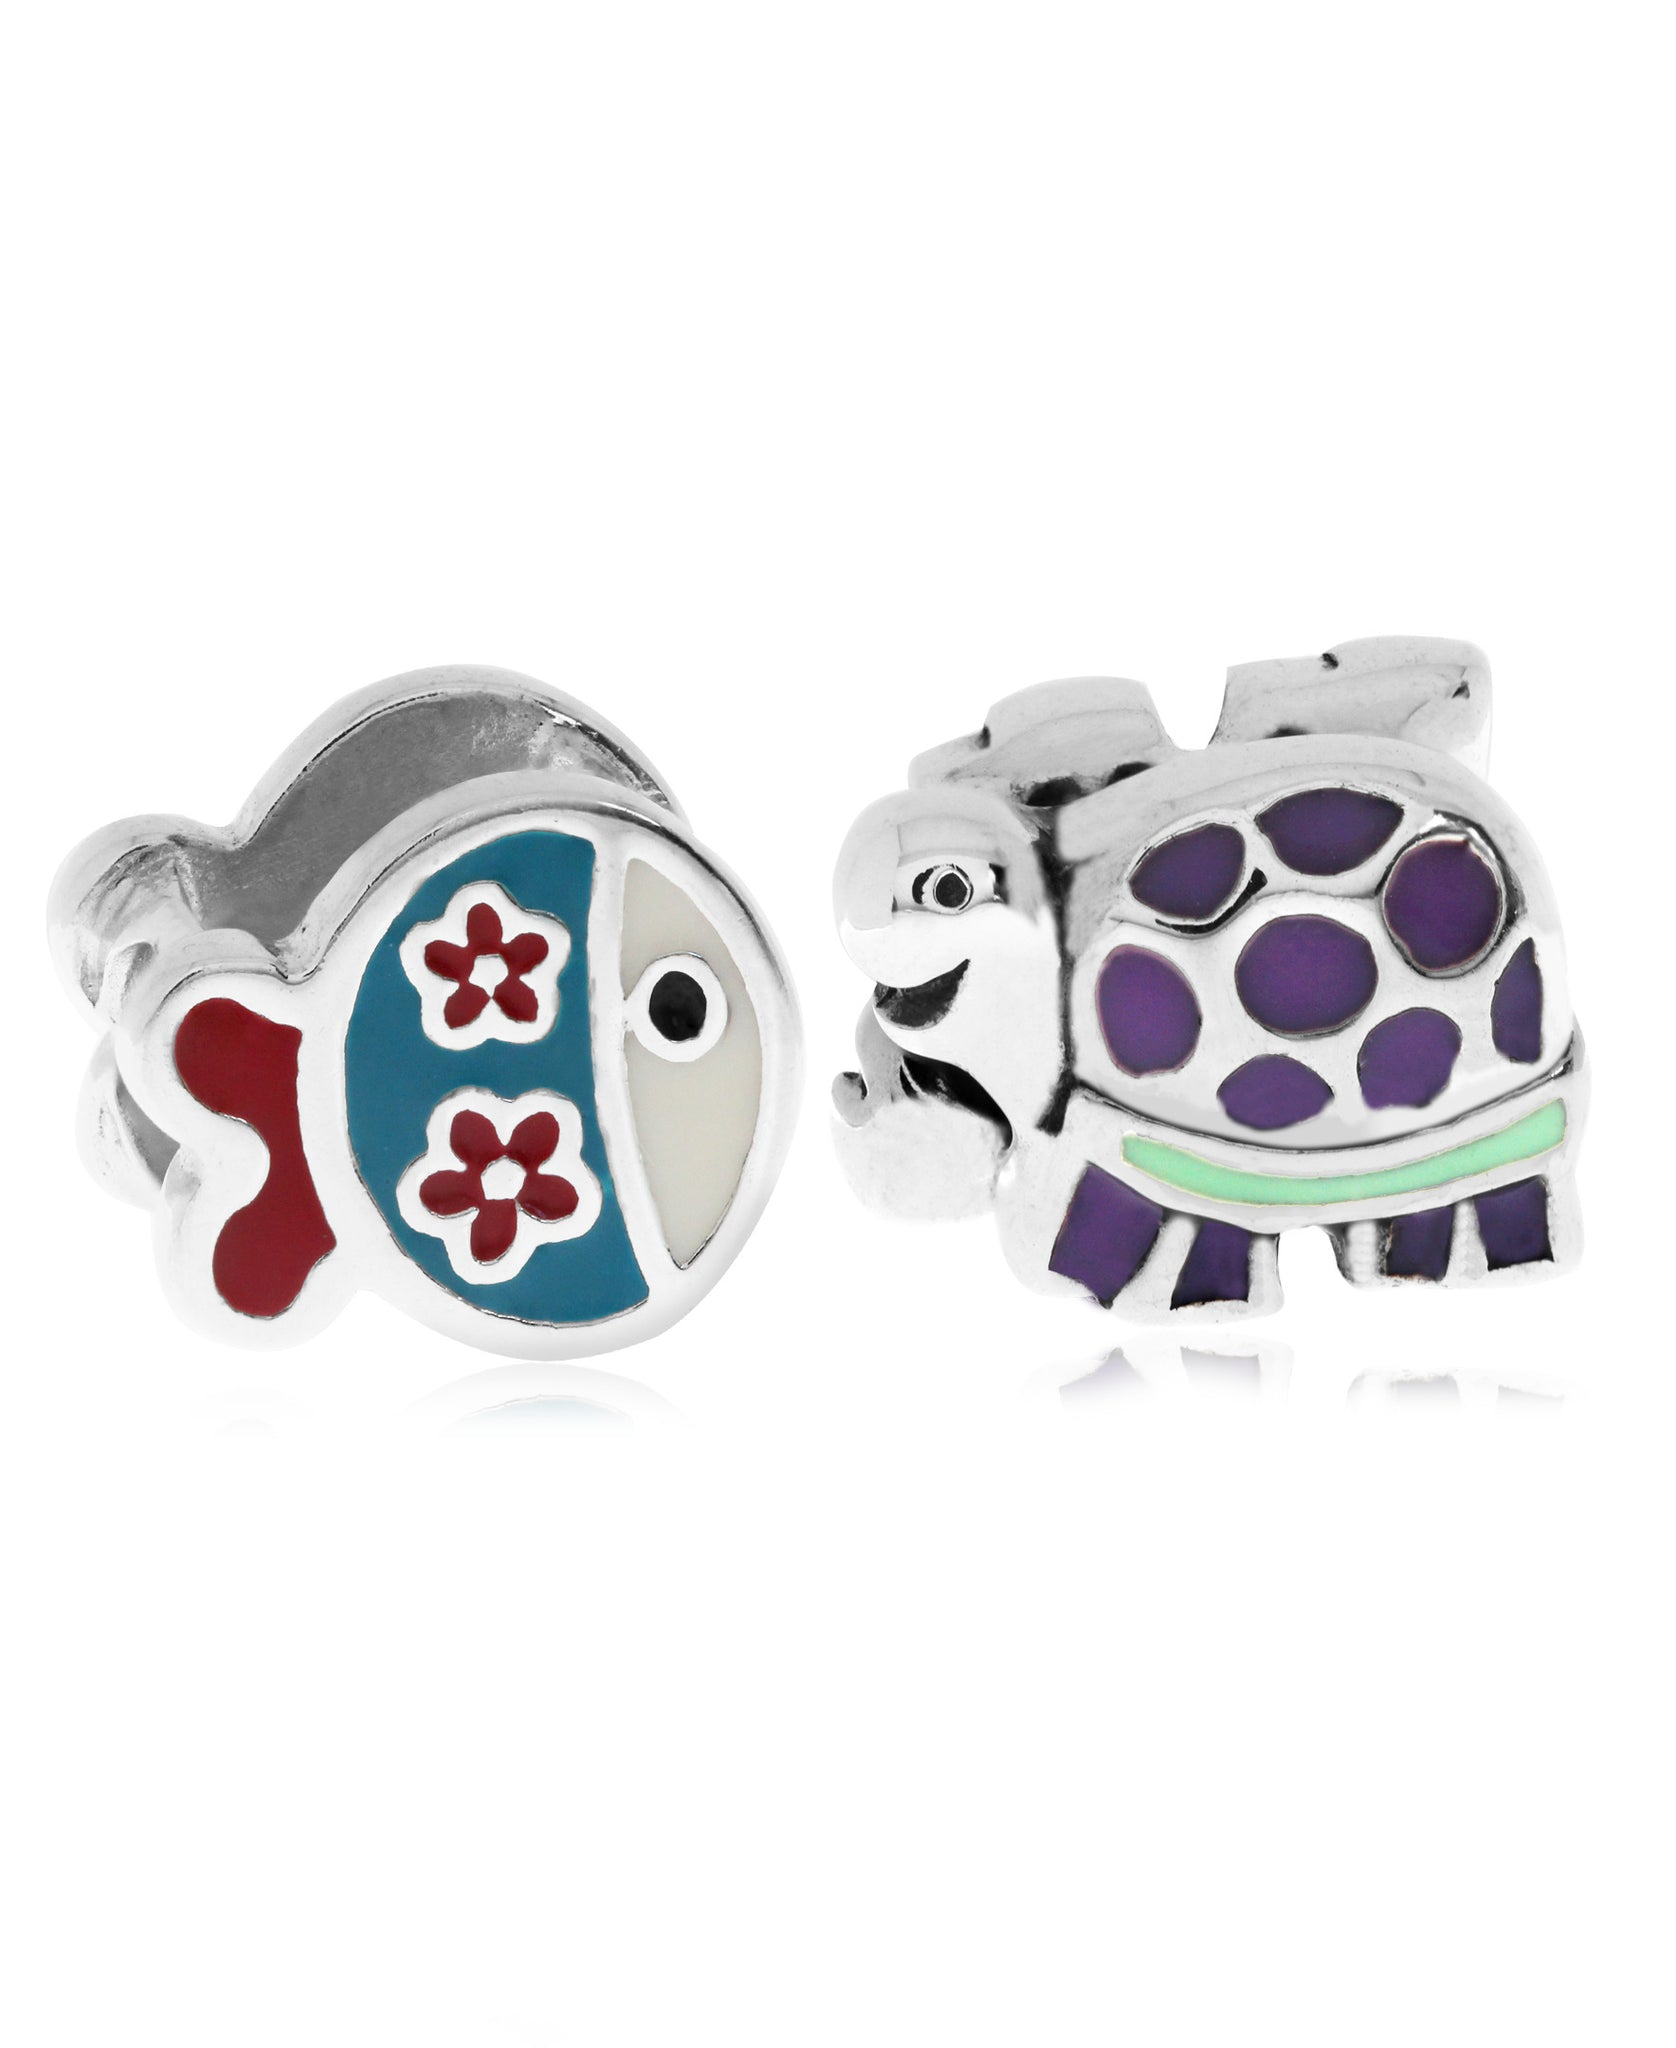 Children's Sterling Silver & Enamel Fish & Turtle Bead Charms - Set of 2 - Rhona Sutton Jewellery